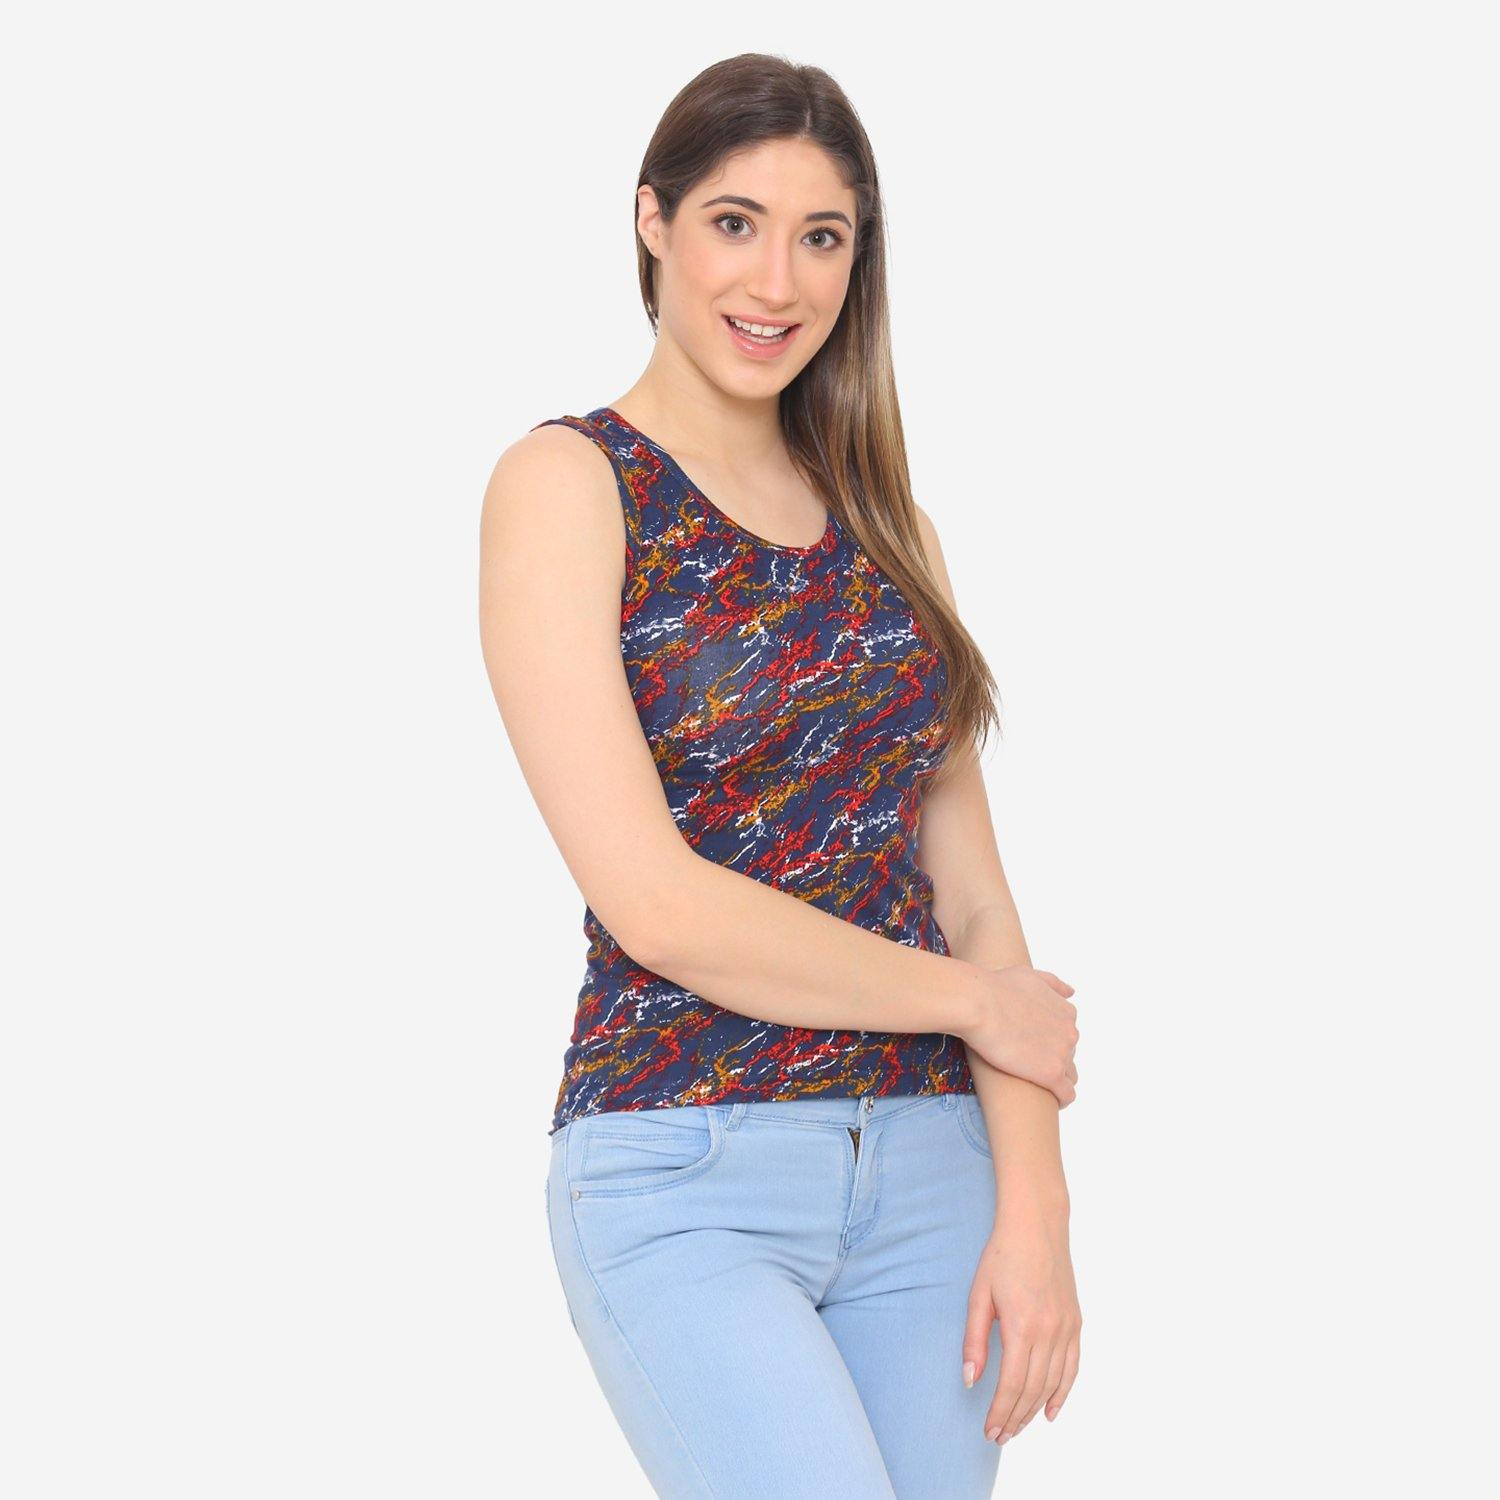 Women's Prints Casual Summer Sleeveless T-Shirt